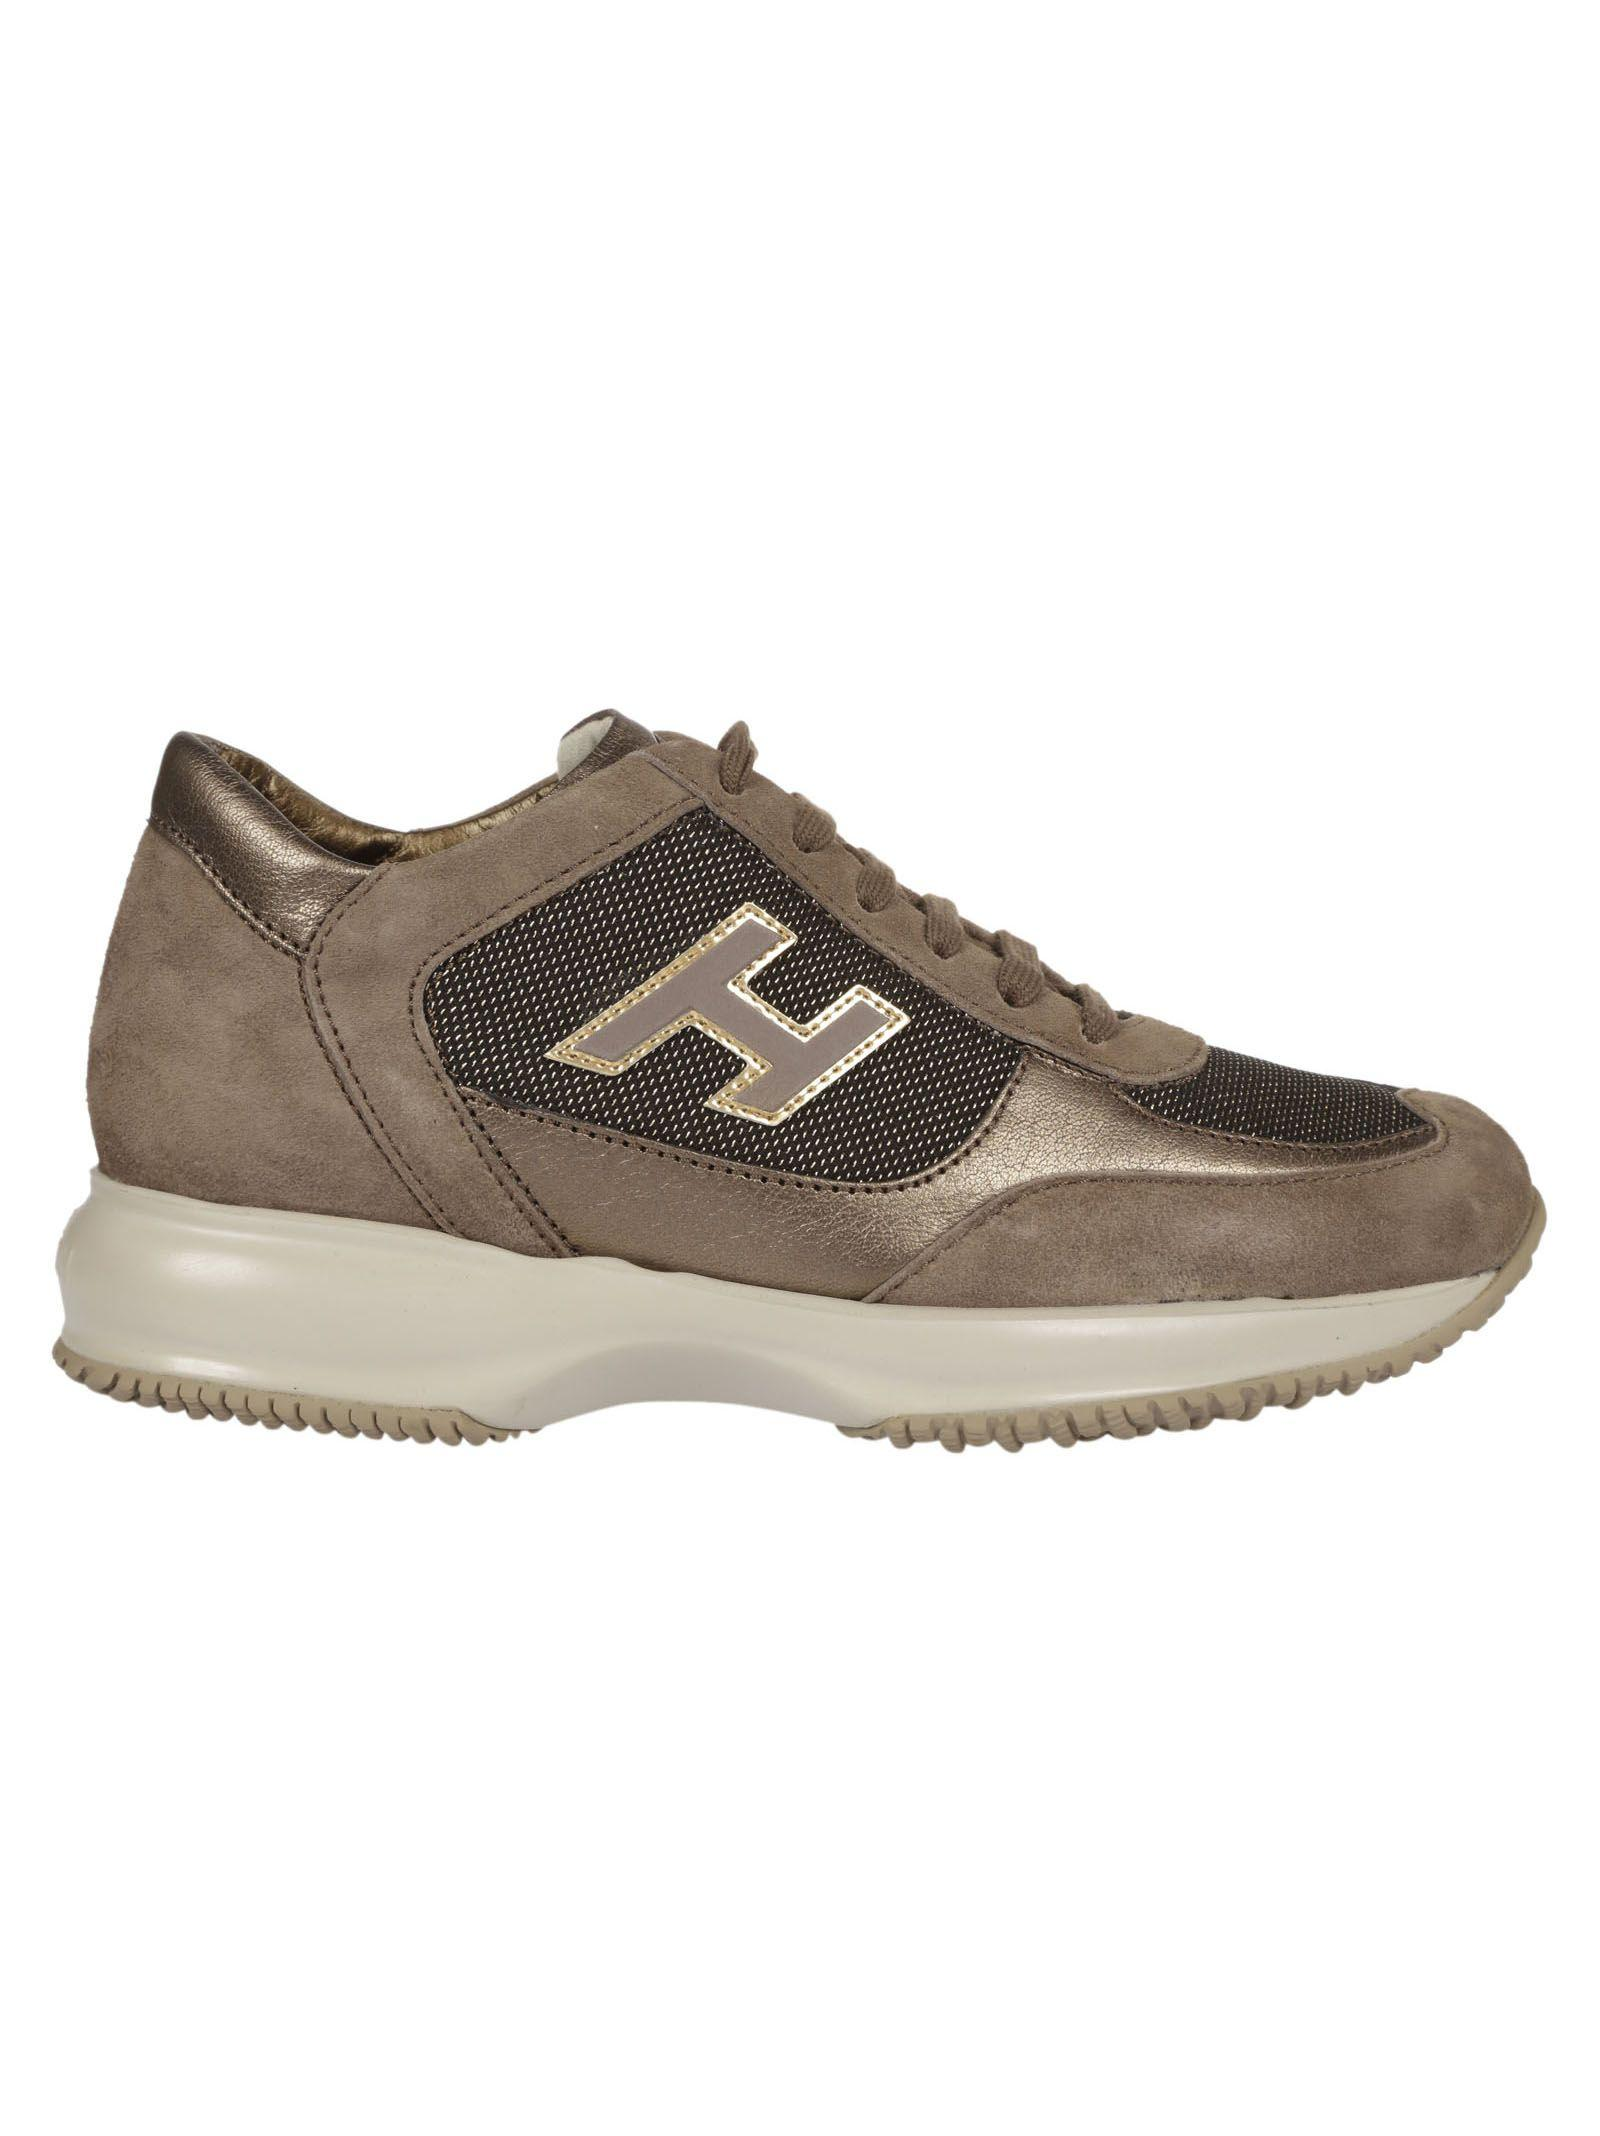 07e693b408b Hogan Women's Shoes Suede Trainers Sneakers Interactive H Flock In Brown